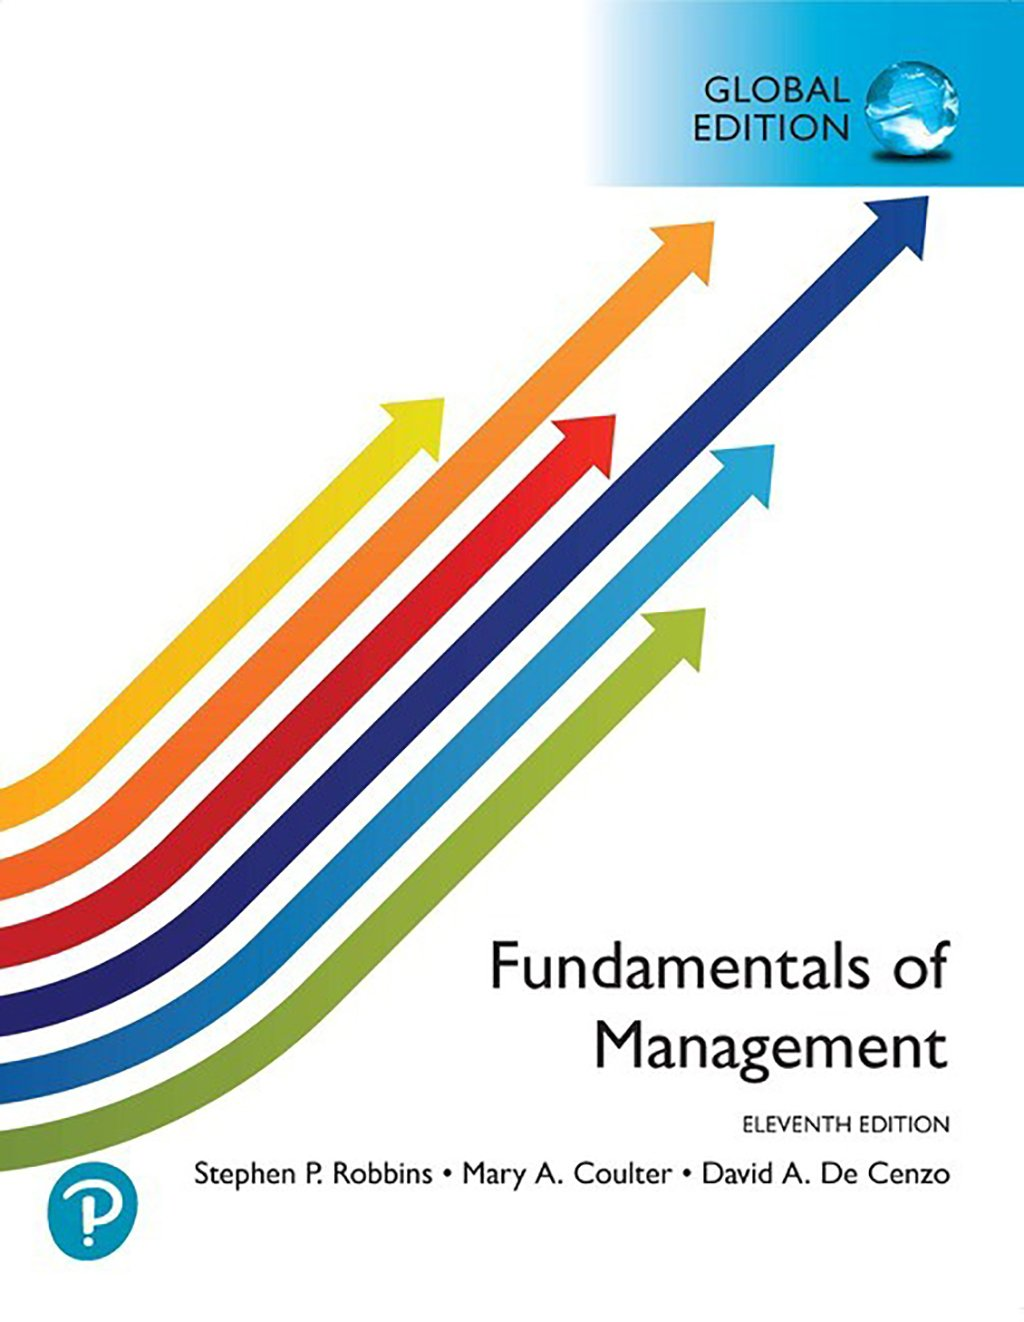 Fundamentals of Management, Global Edition MyLab Management, 11th Edition